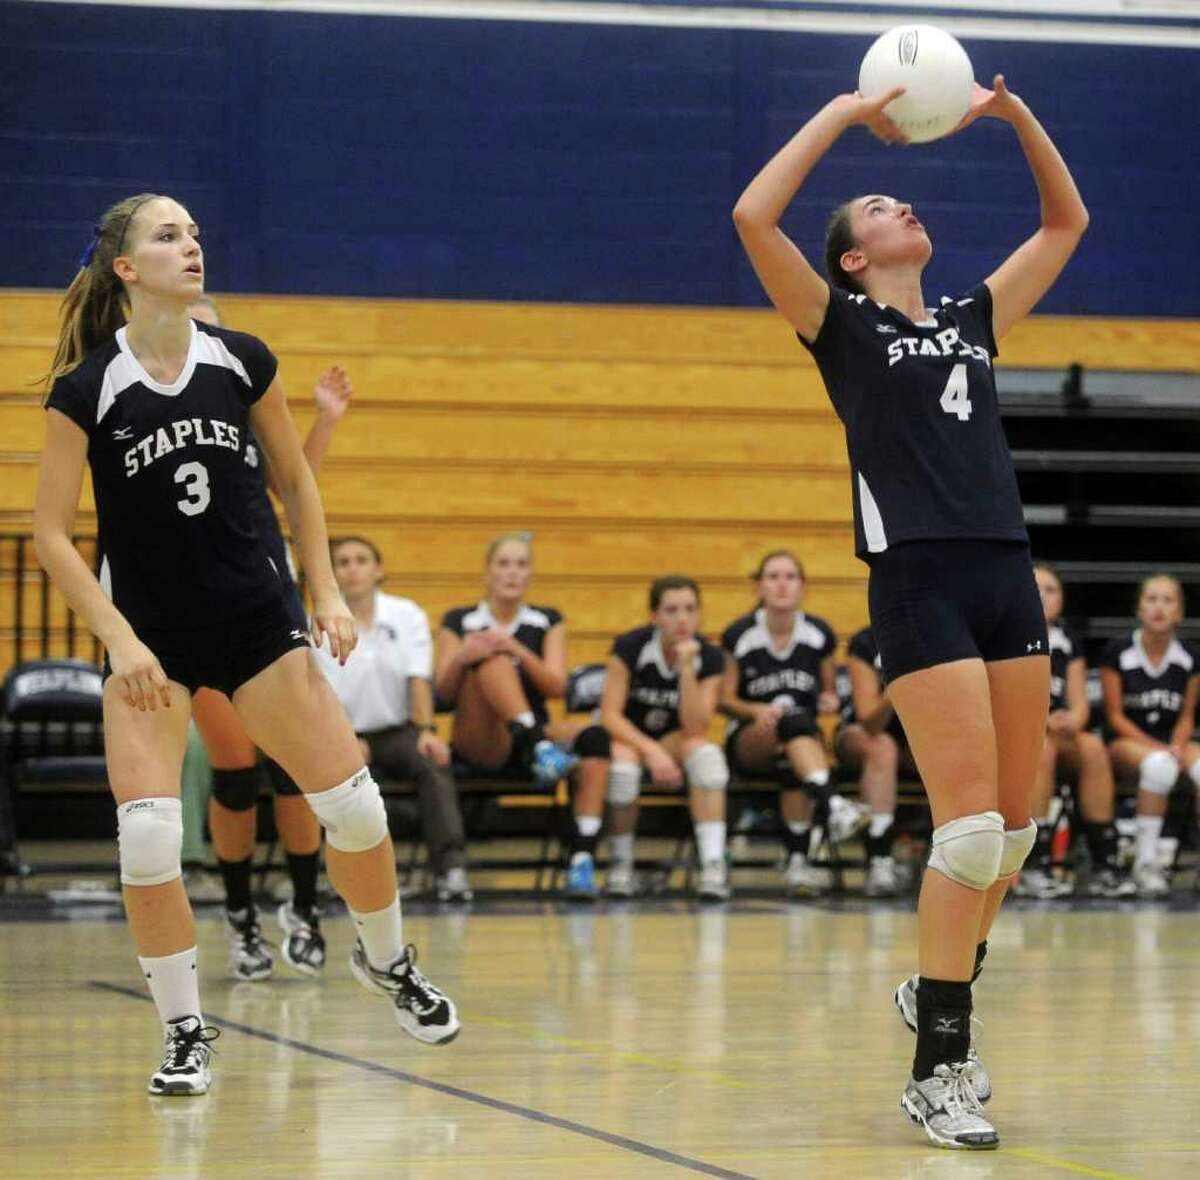 Augie Gradoux-Matt, left, watches as Staples teammate Lucy stanley sets the ball during Wednesday's game against Darien at Staples High School on September 29, 2010. volleyball